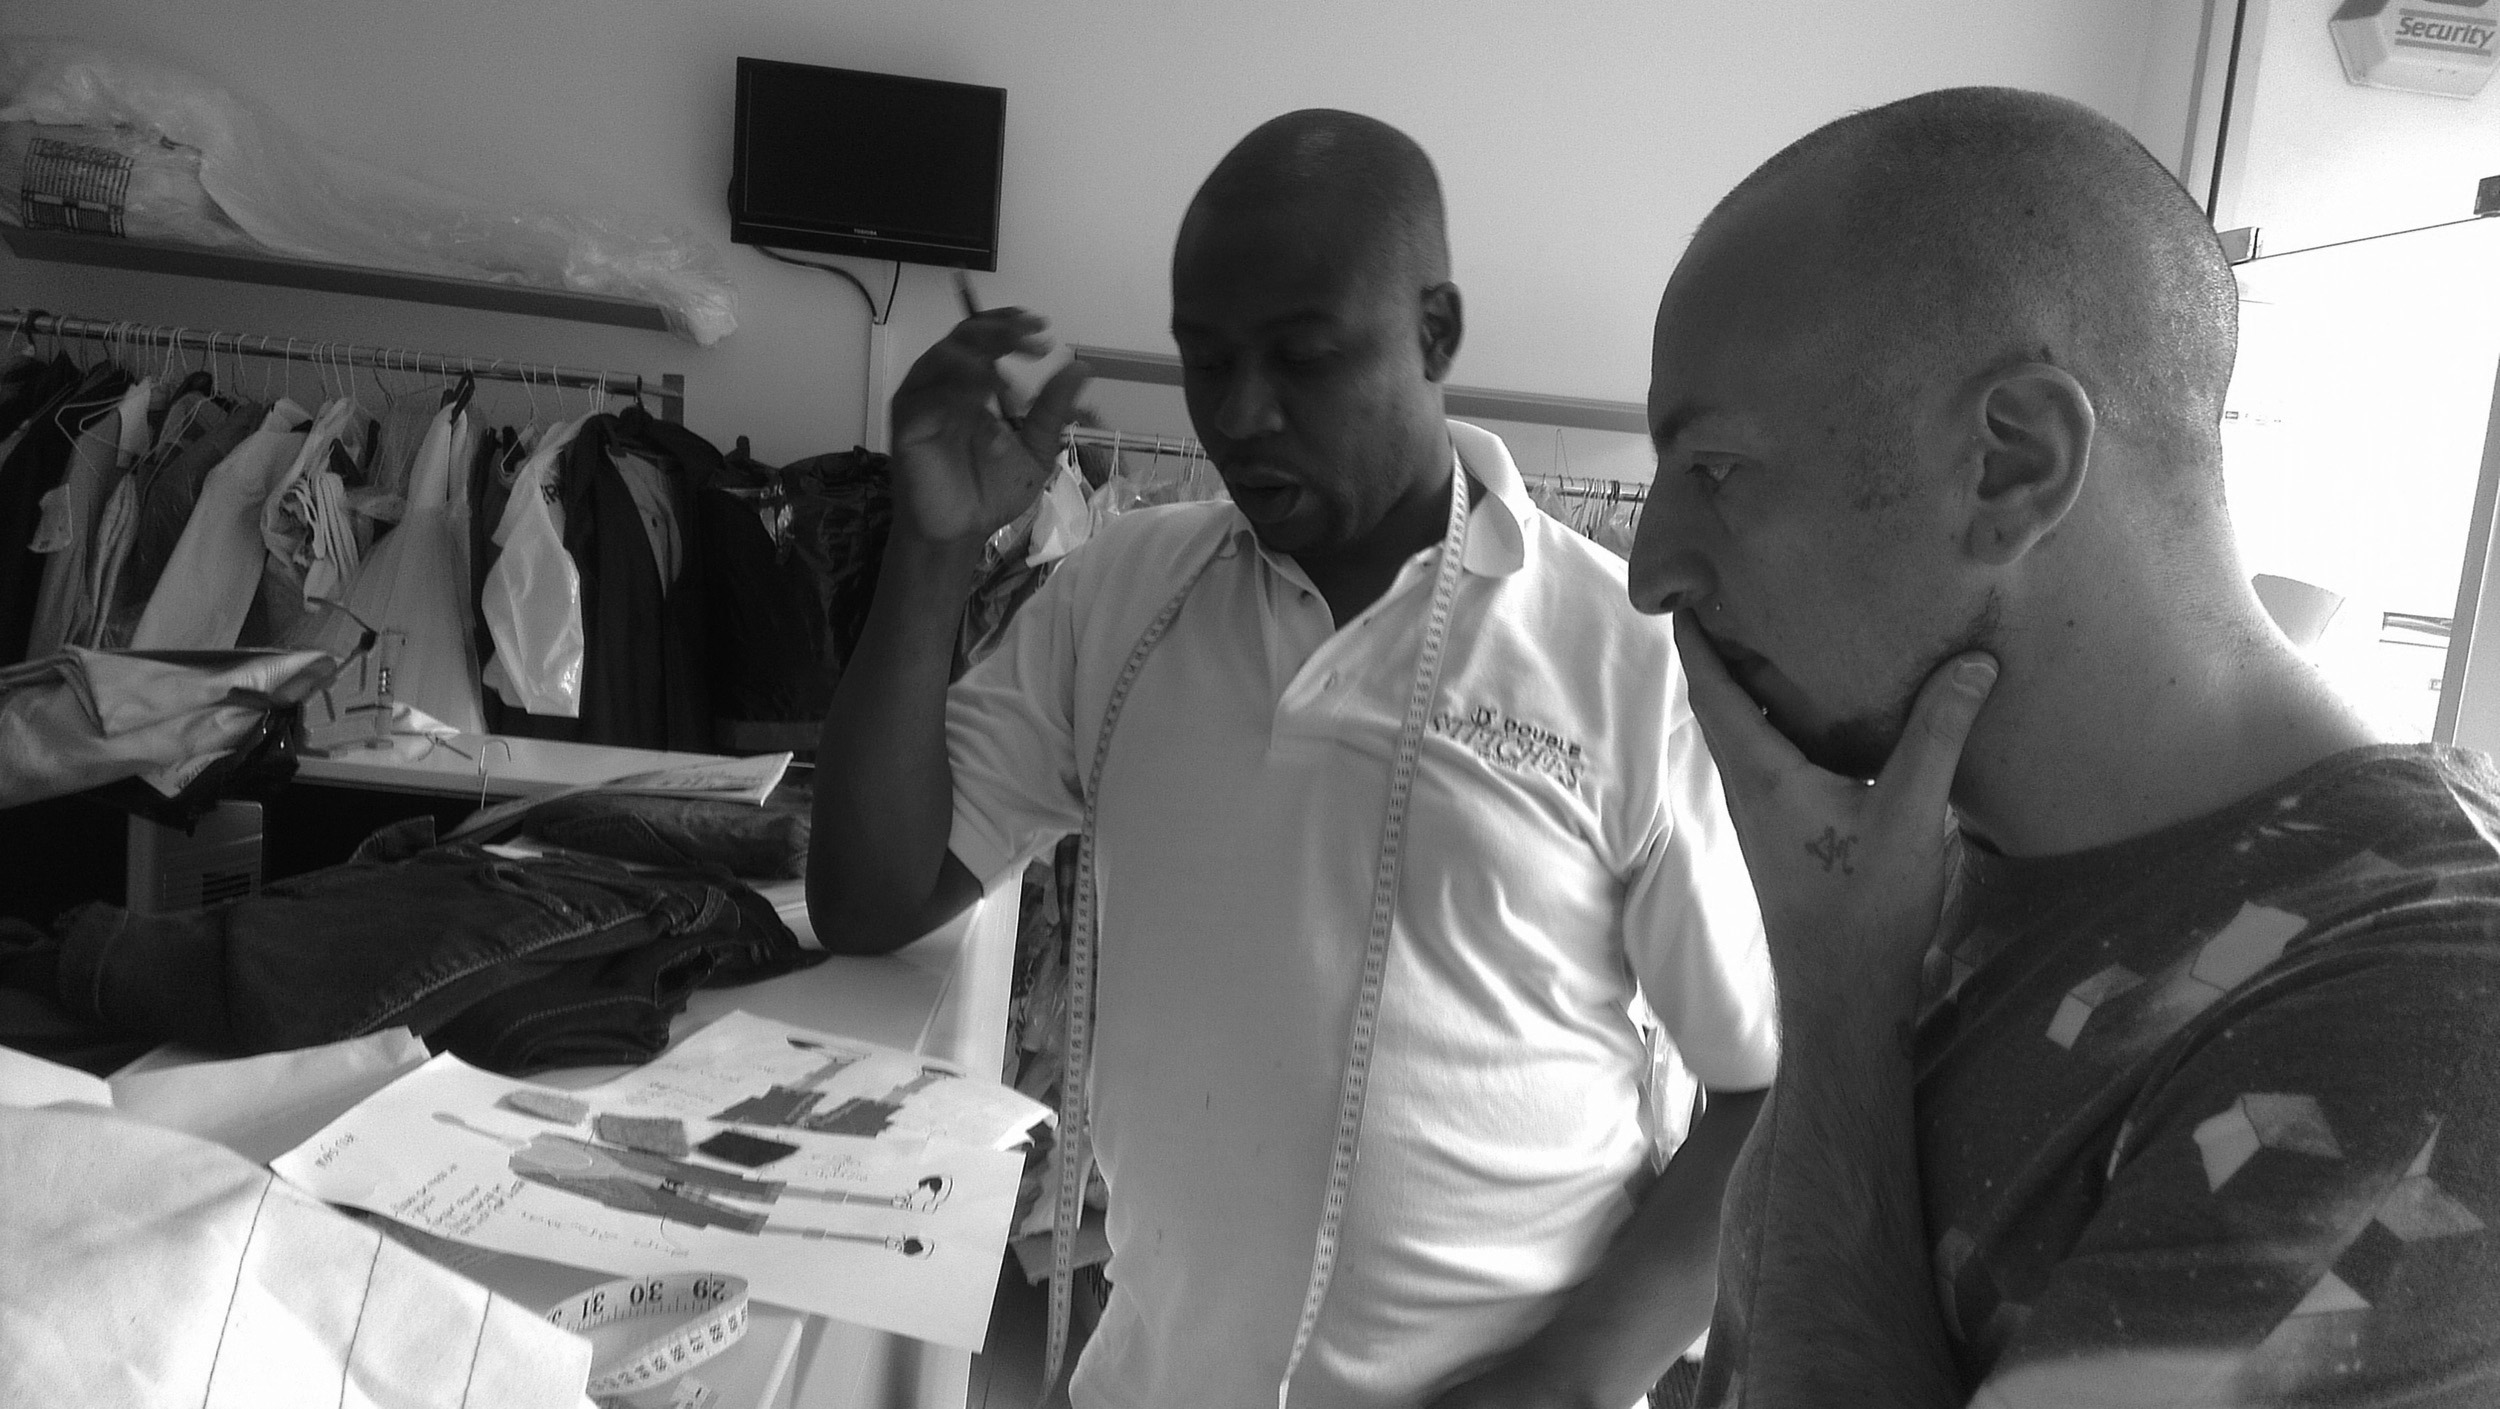 Carlo working with London tailor Udo, whose team helped bring the collection to life